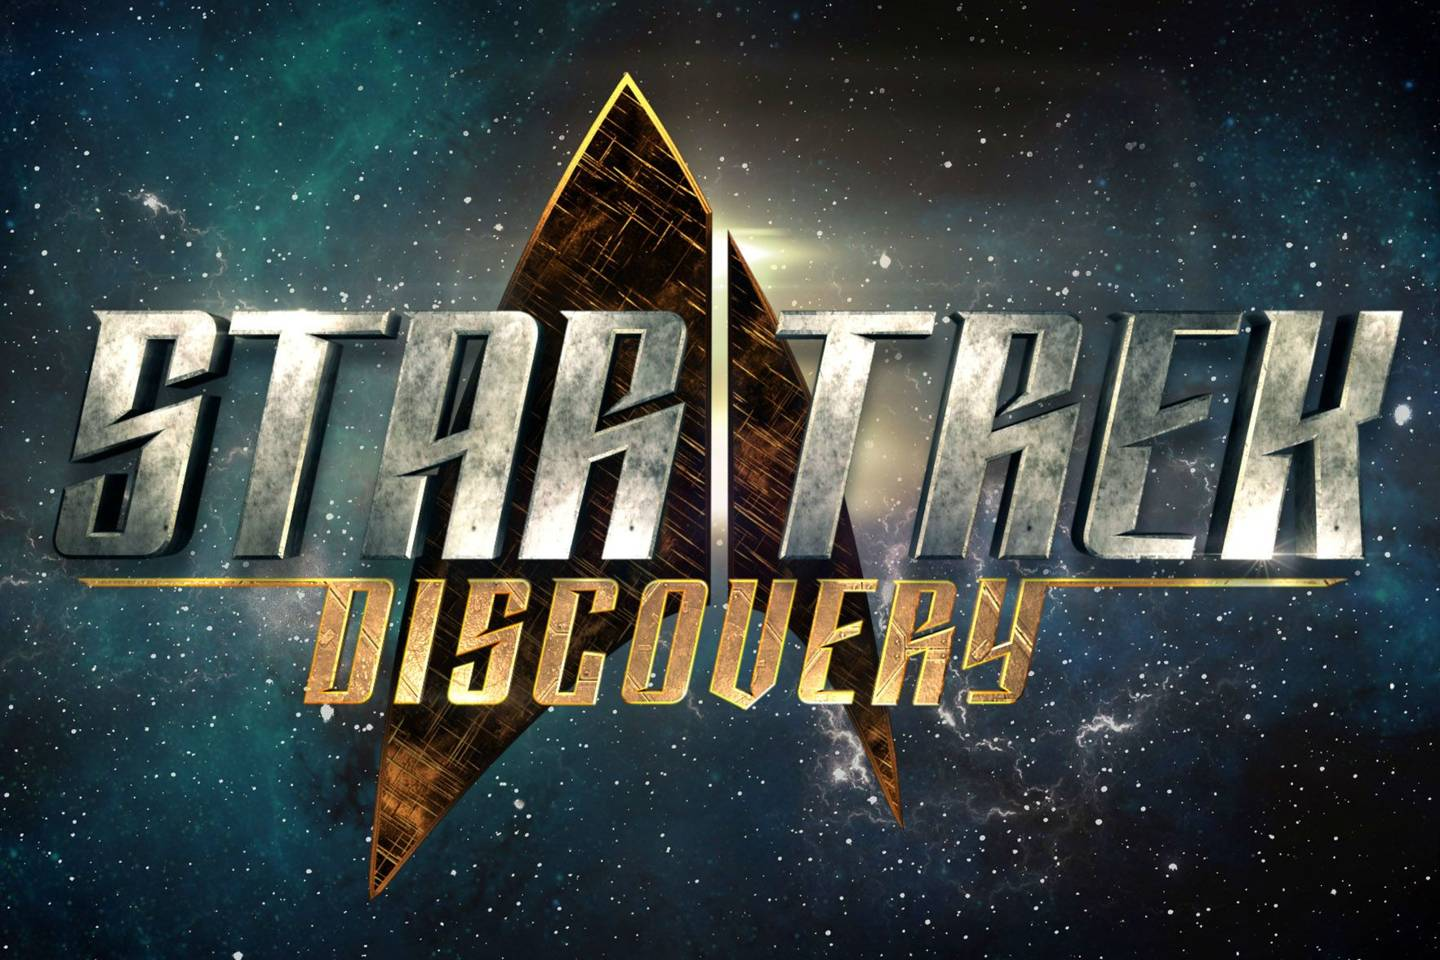 Star Trek Discovery finally has a release date - Wired.co.uk